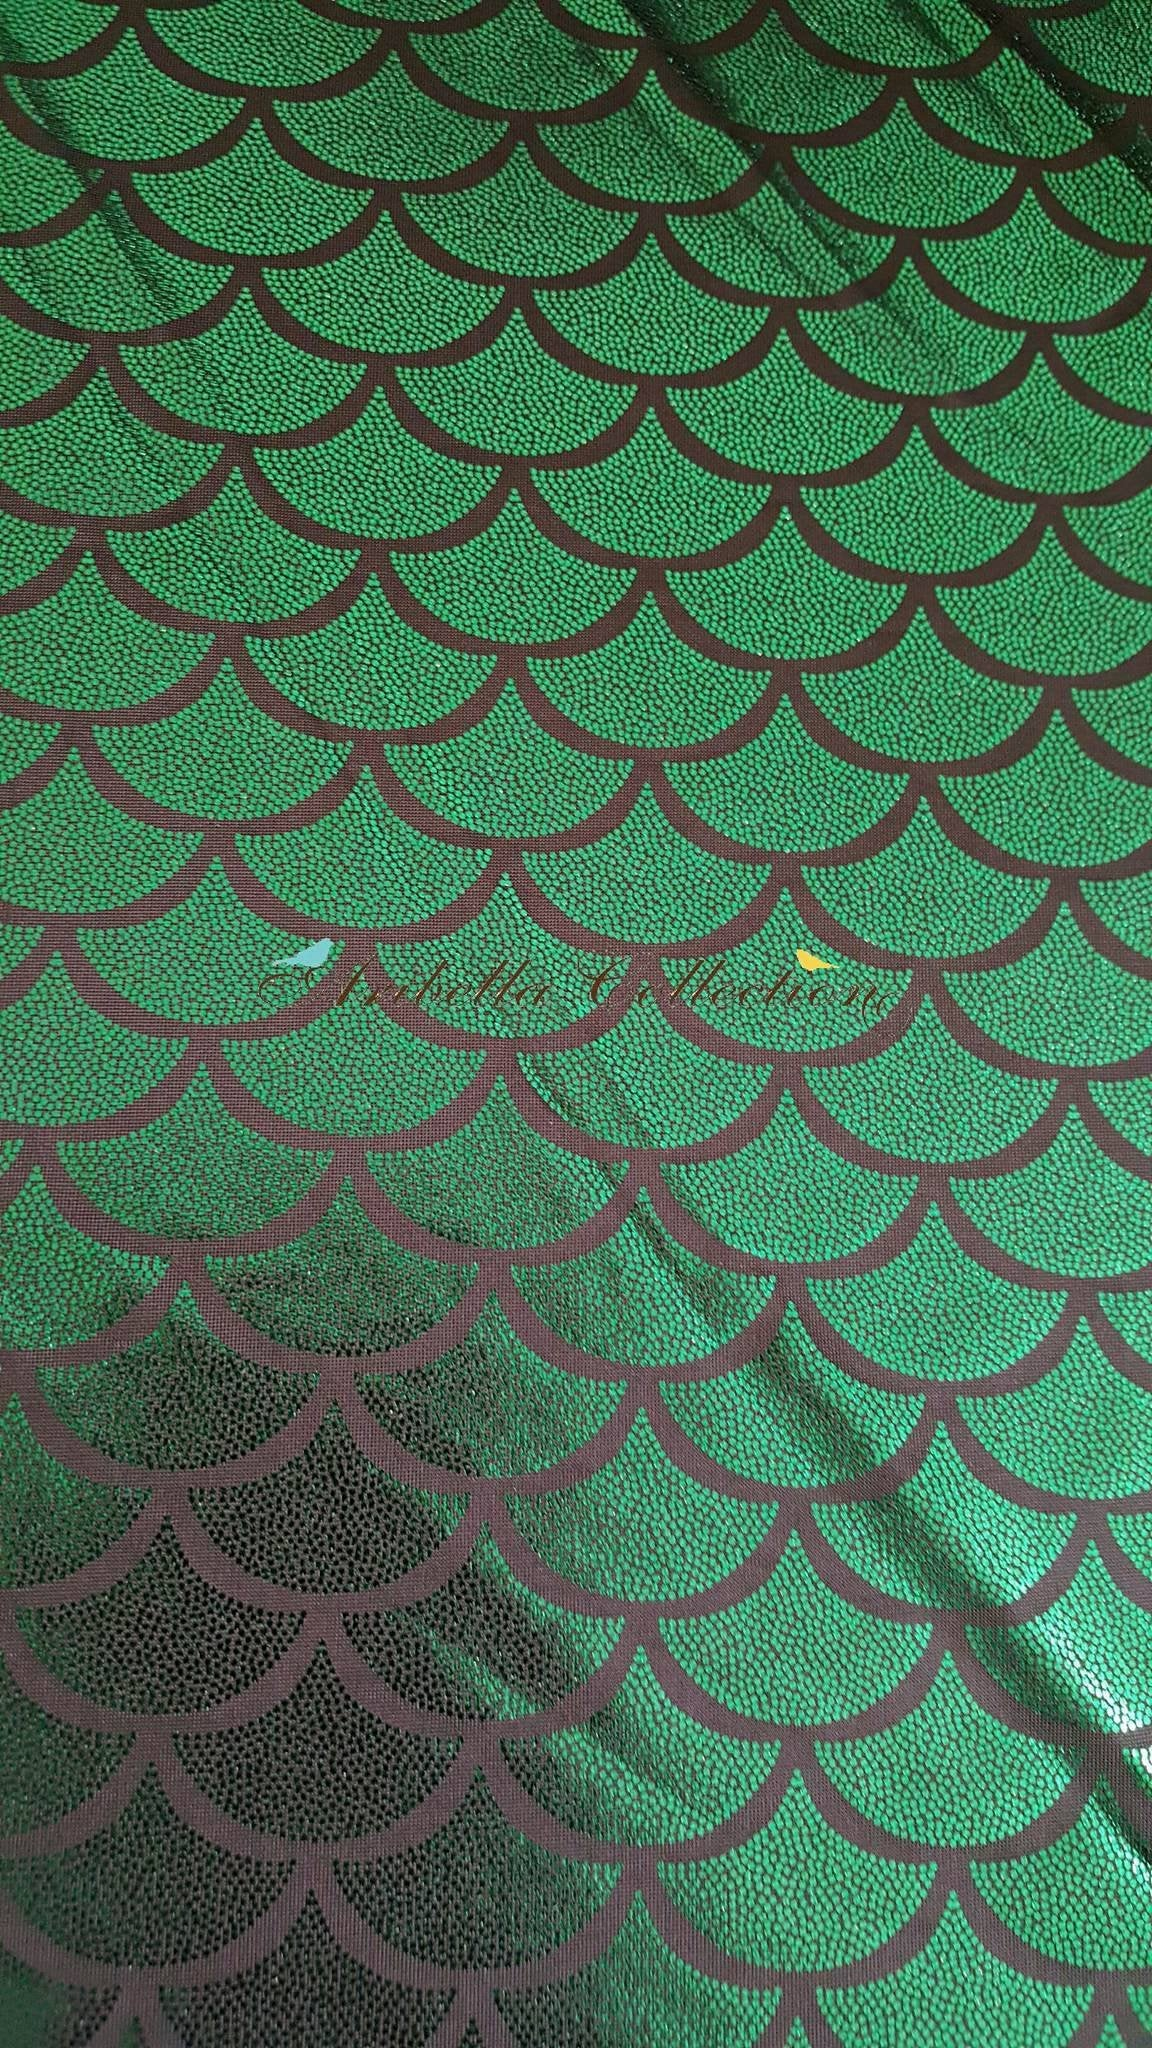 Mermaid Fish Scale Foil Dot Print Fabric By The Yard - 2 Way Stretch - Blue or Green Color - Aribella Collection